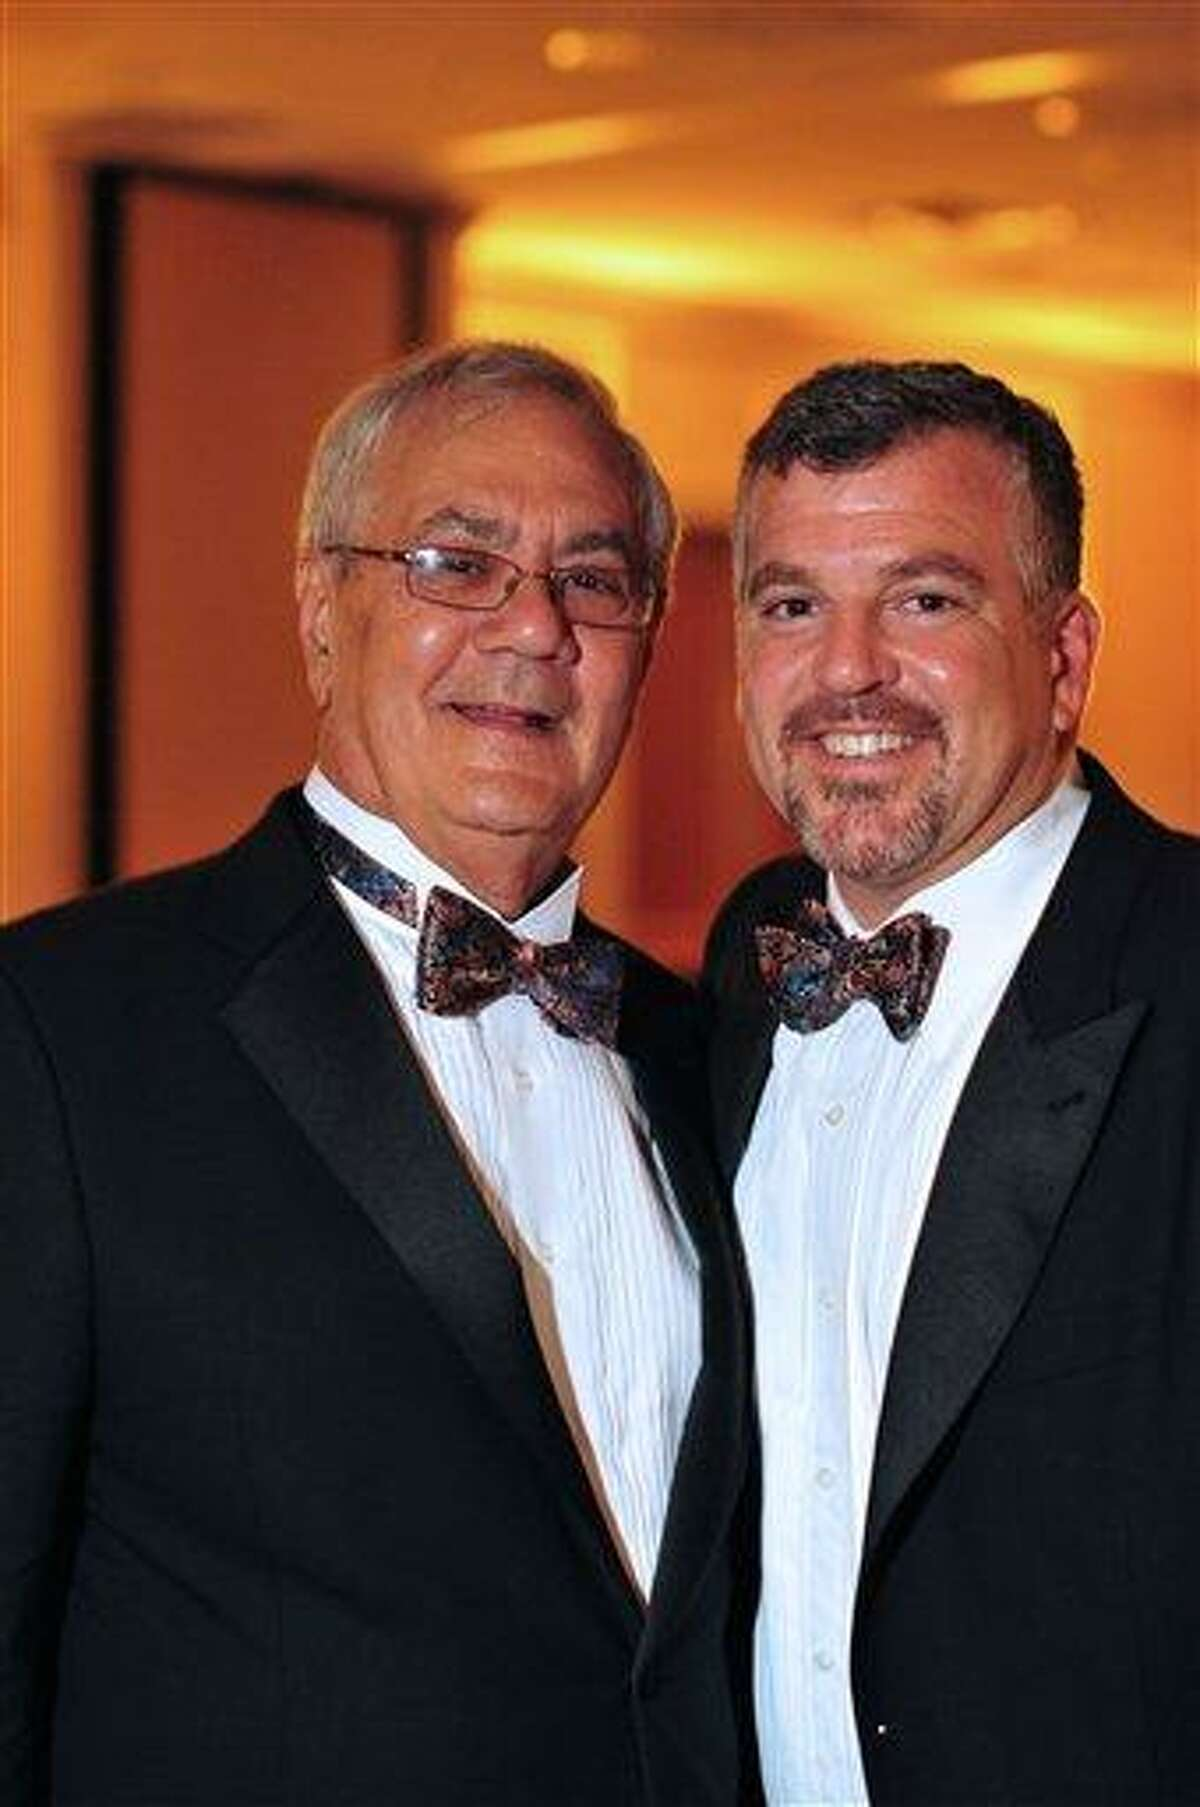 This image provided by Fotique shows U.S. Rep. Barney Frank, D-Mass., left, and Jim Ready posing at their wedding reception Saturday. Frank married his longtime partner in a ceremony officiated by Massachusetts Gov. Deval Patrick in Newton, Mass. Associated Press